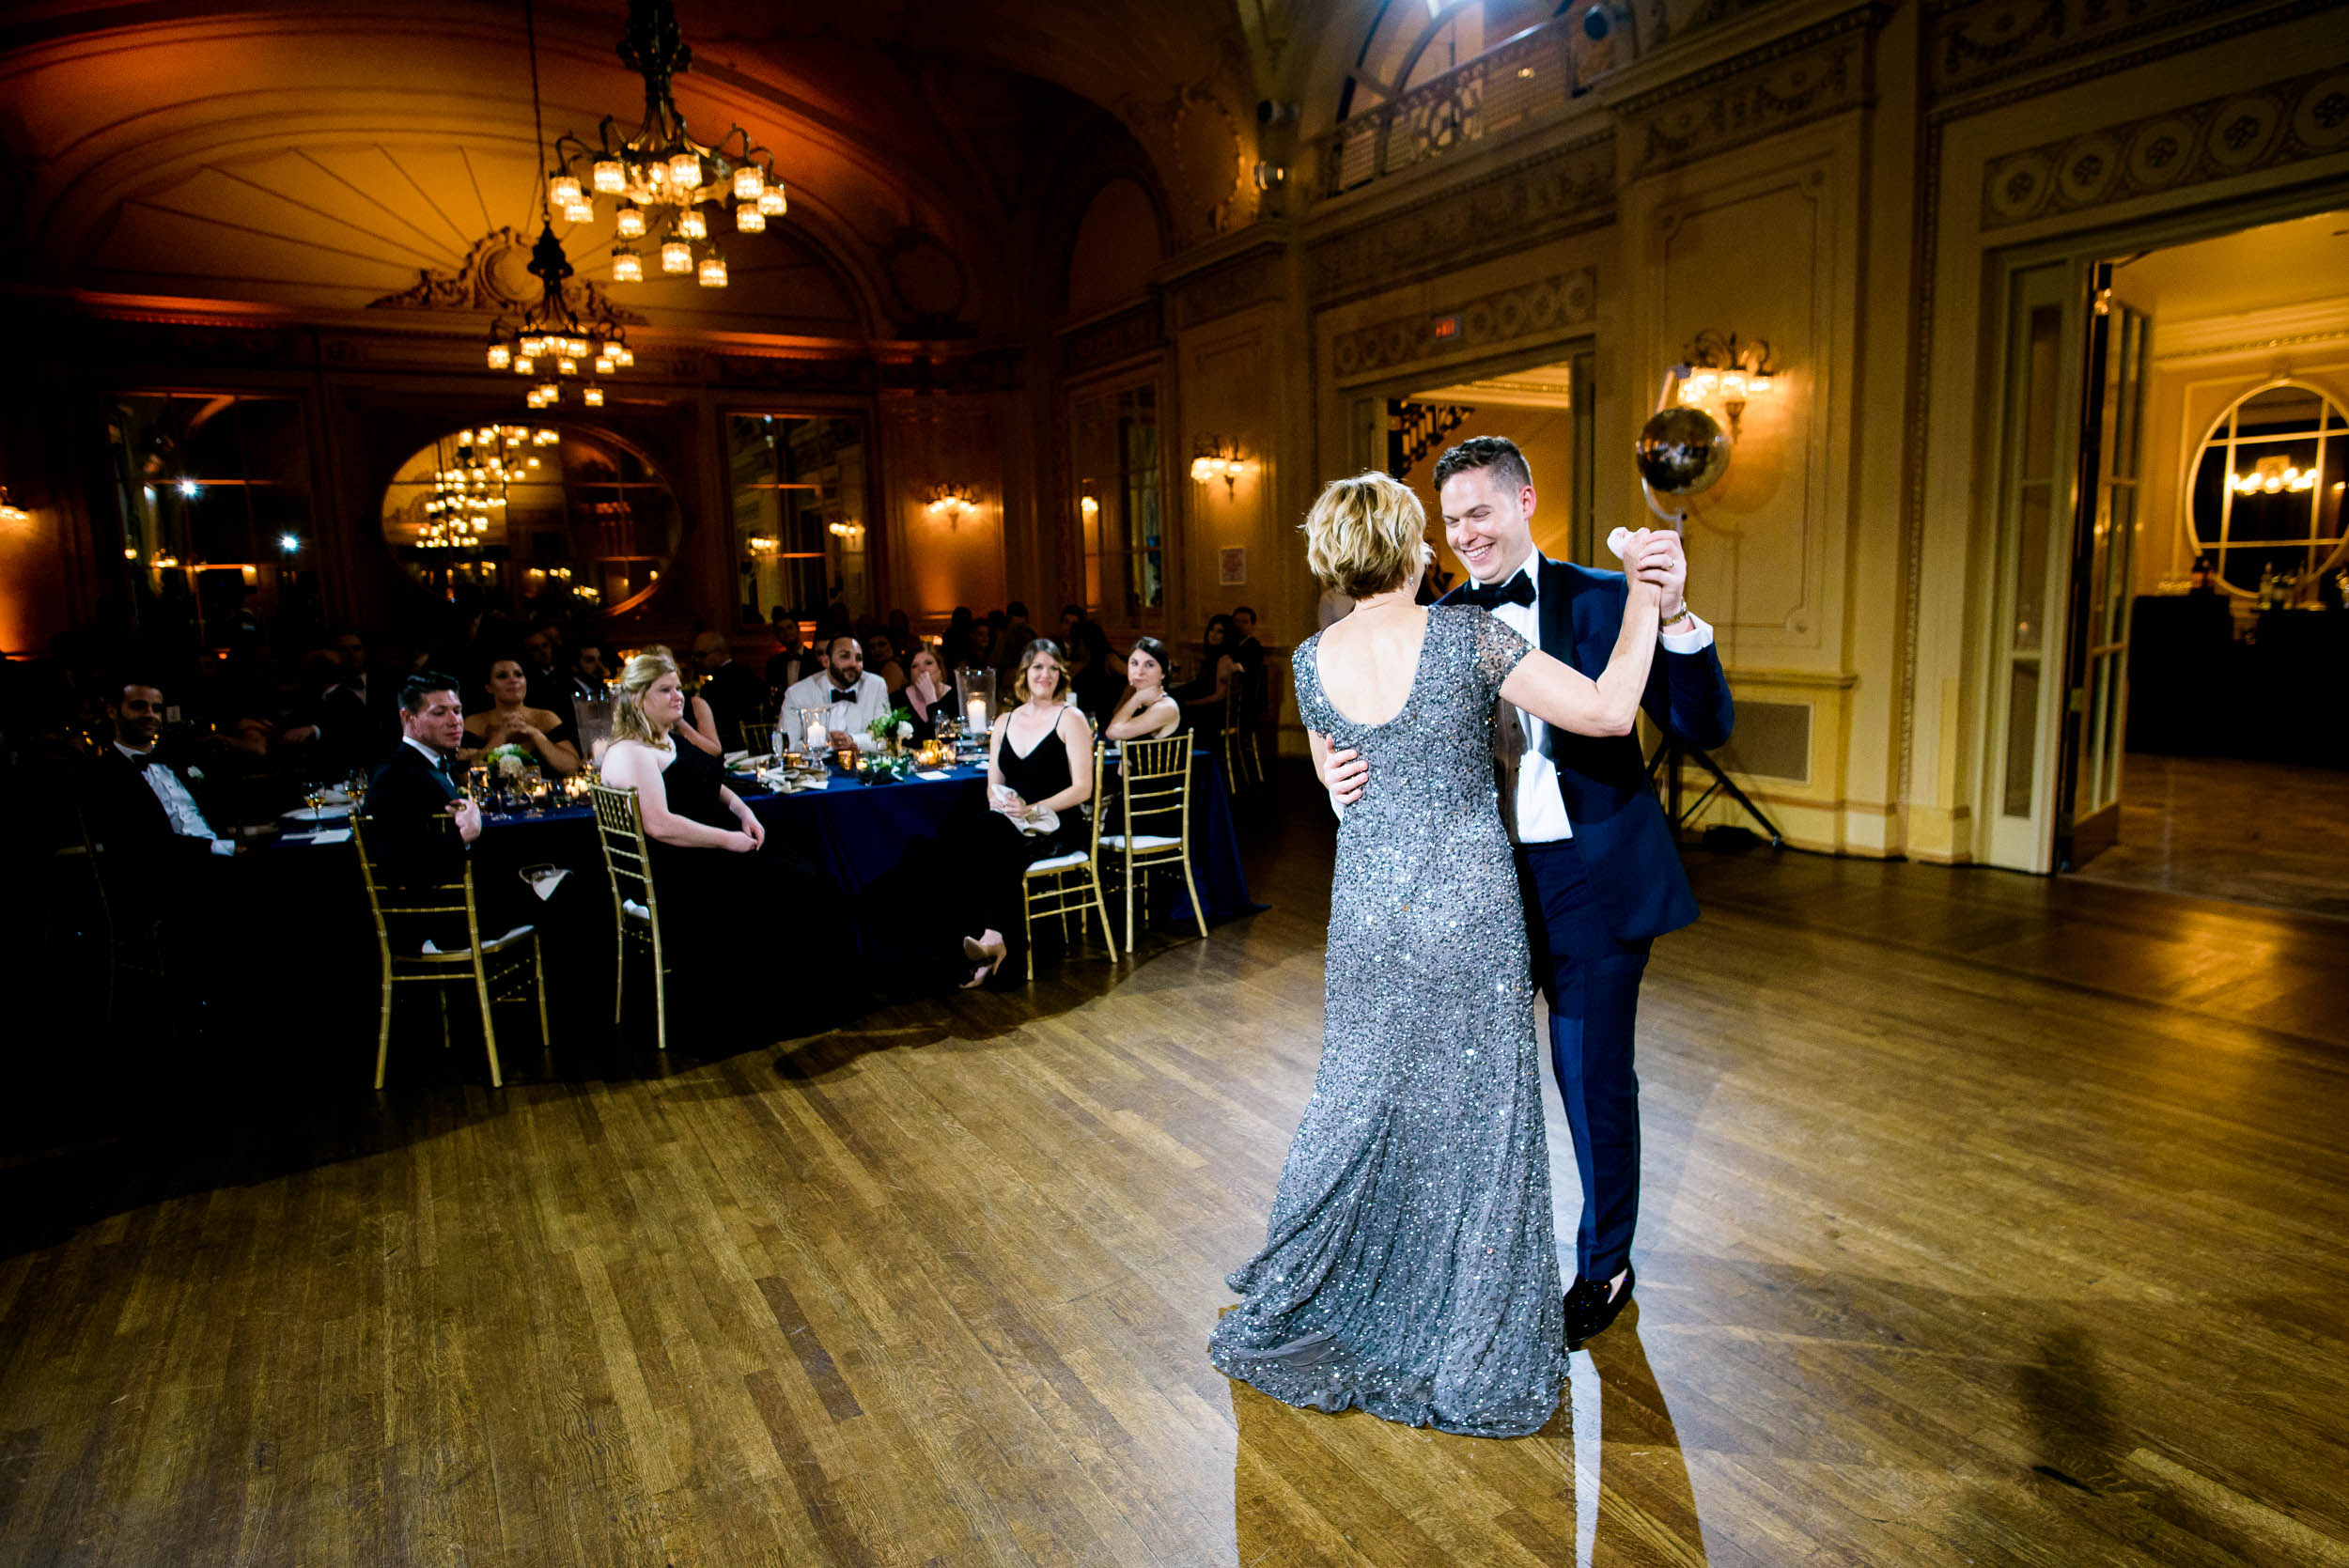 Mother and son dancing at luxurious fall wedding at the Chicago Symphony Center captured by J. Brown Photography. See more wedding ideas at jbrownphotography.com!